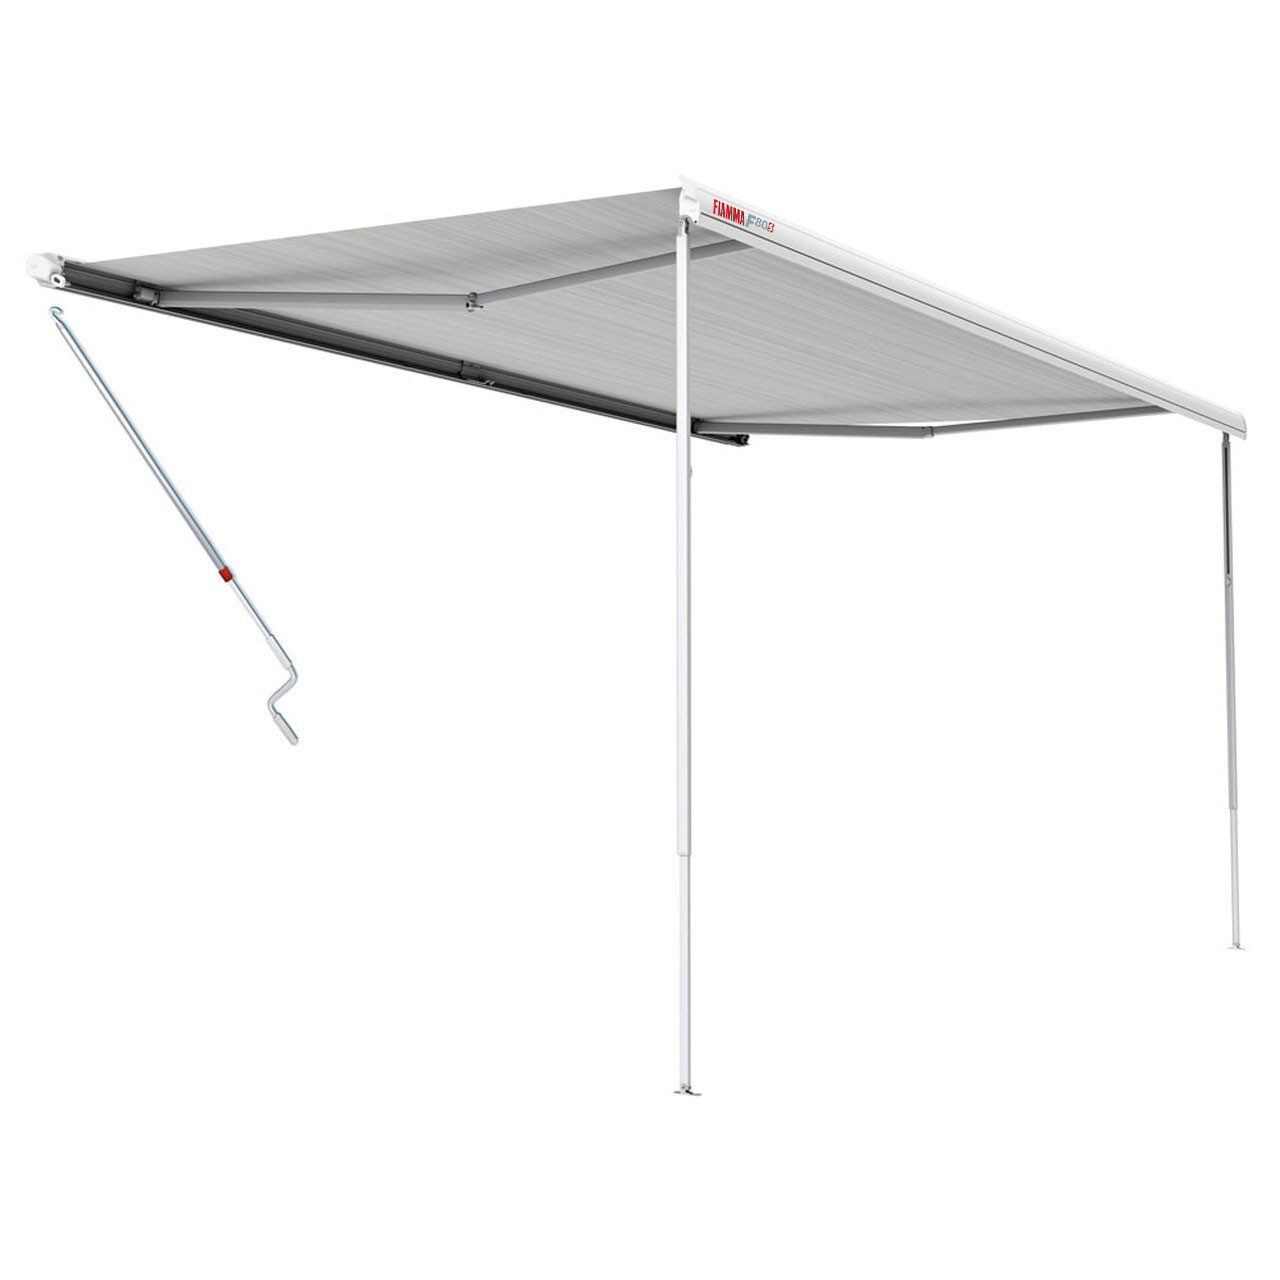 Fiamma 07830d01r Camper Van F80s Patio Awning 3 7m 12 2 White Case